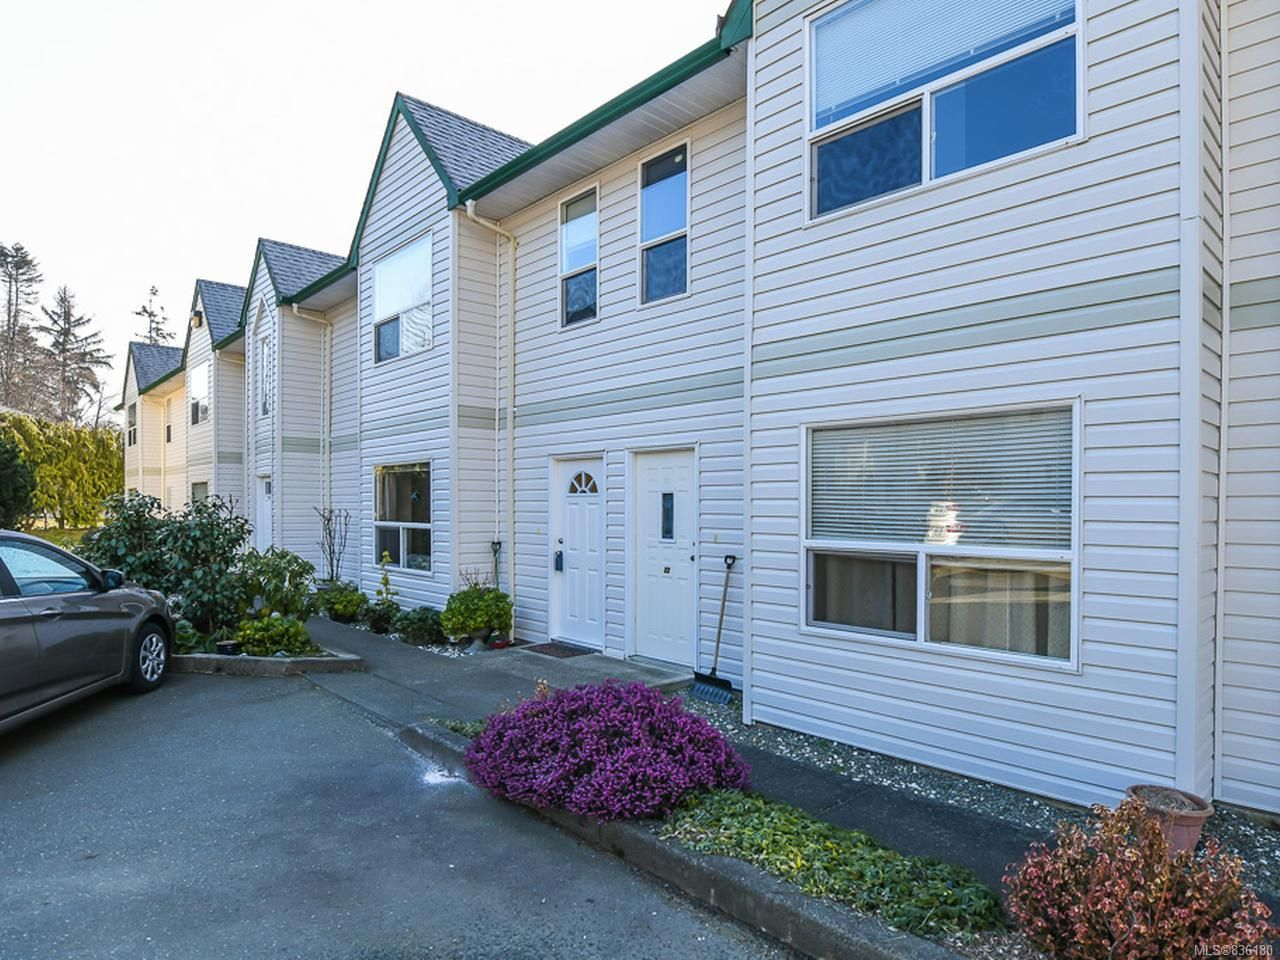 Main Photo: 21 1535 Dingwall Rd in COURTENAY: CV Courtenay East Row/Townhouse for sale (Comox Valley)  : MLS®# 836180